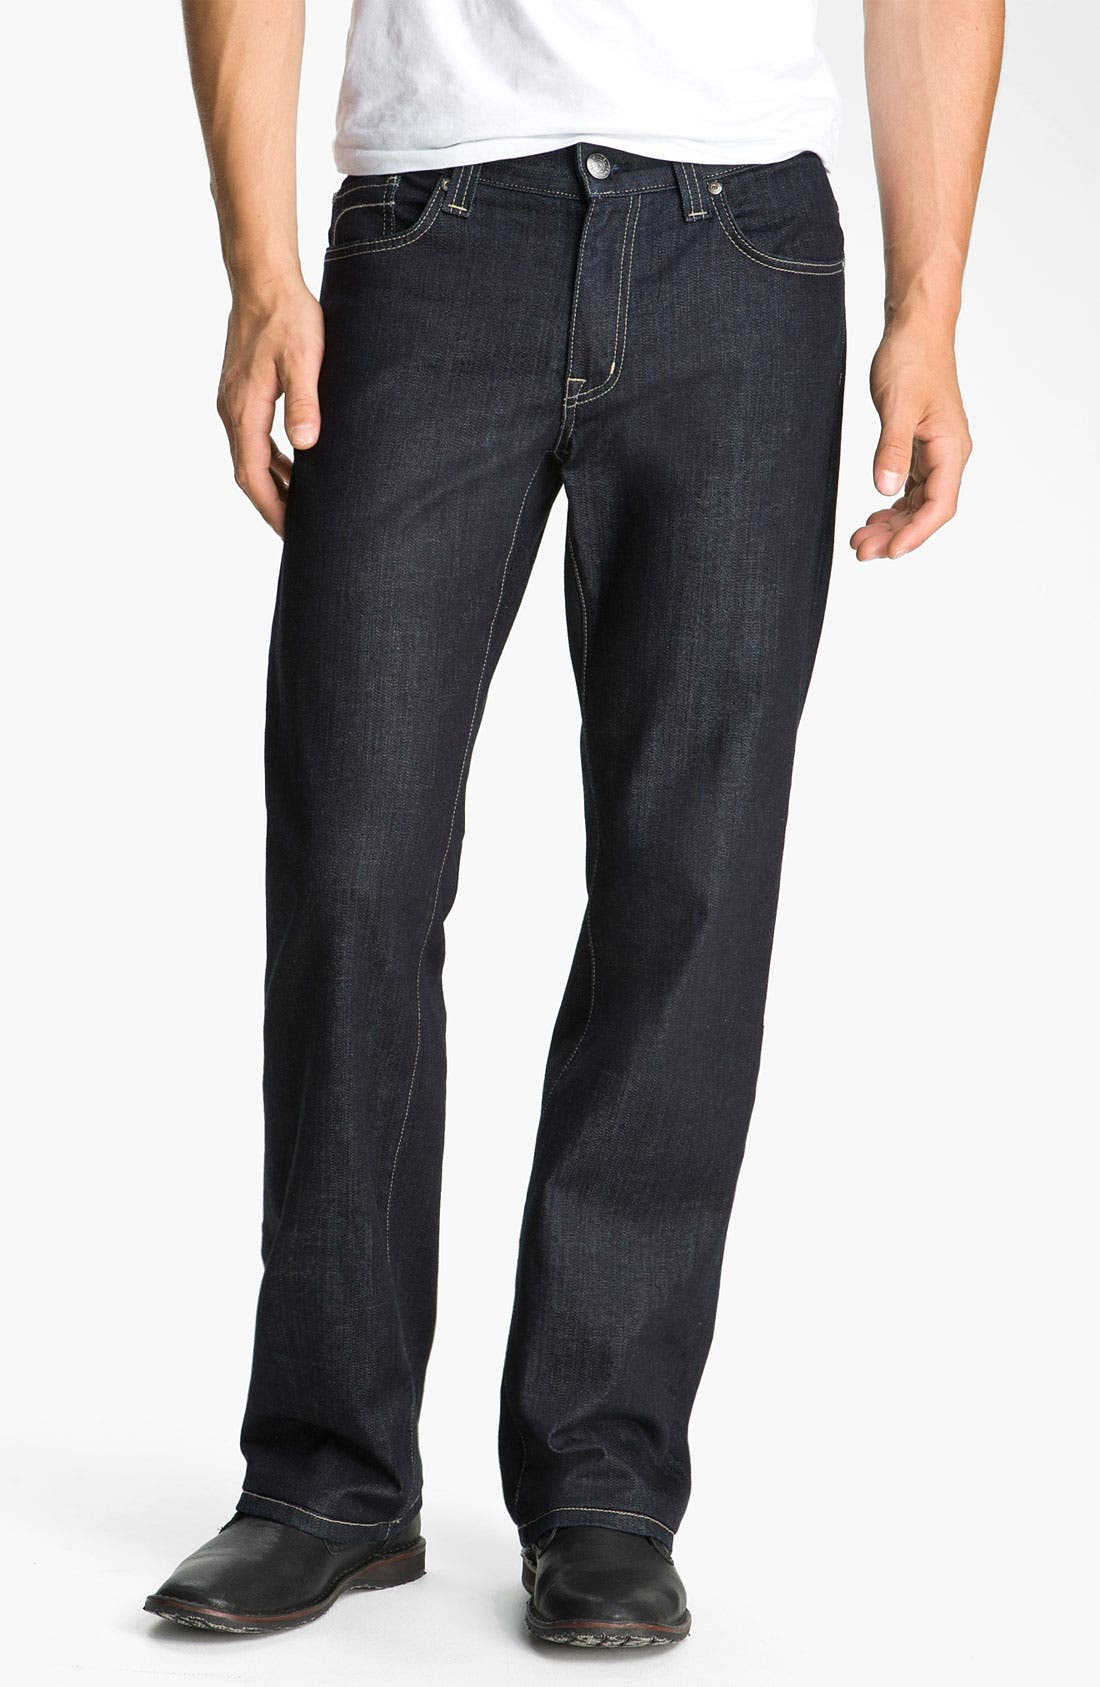 Main Image - Fidelity Denim 'Camino' Relaxed Leg Jeans (Pacific Dark)